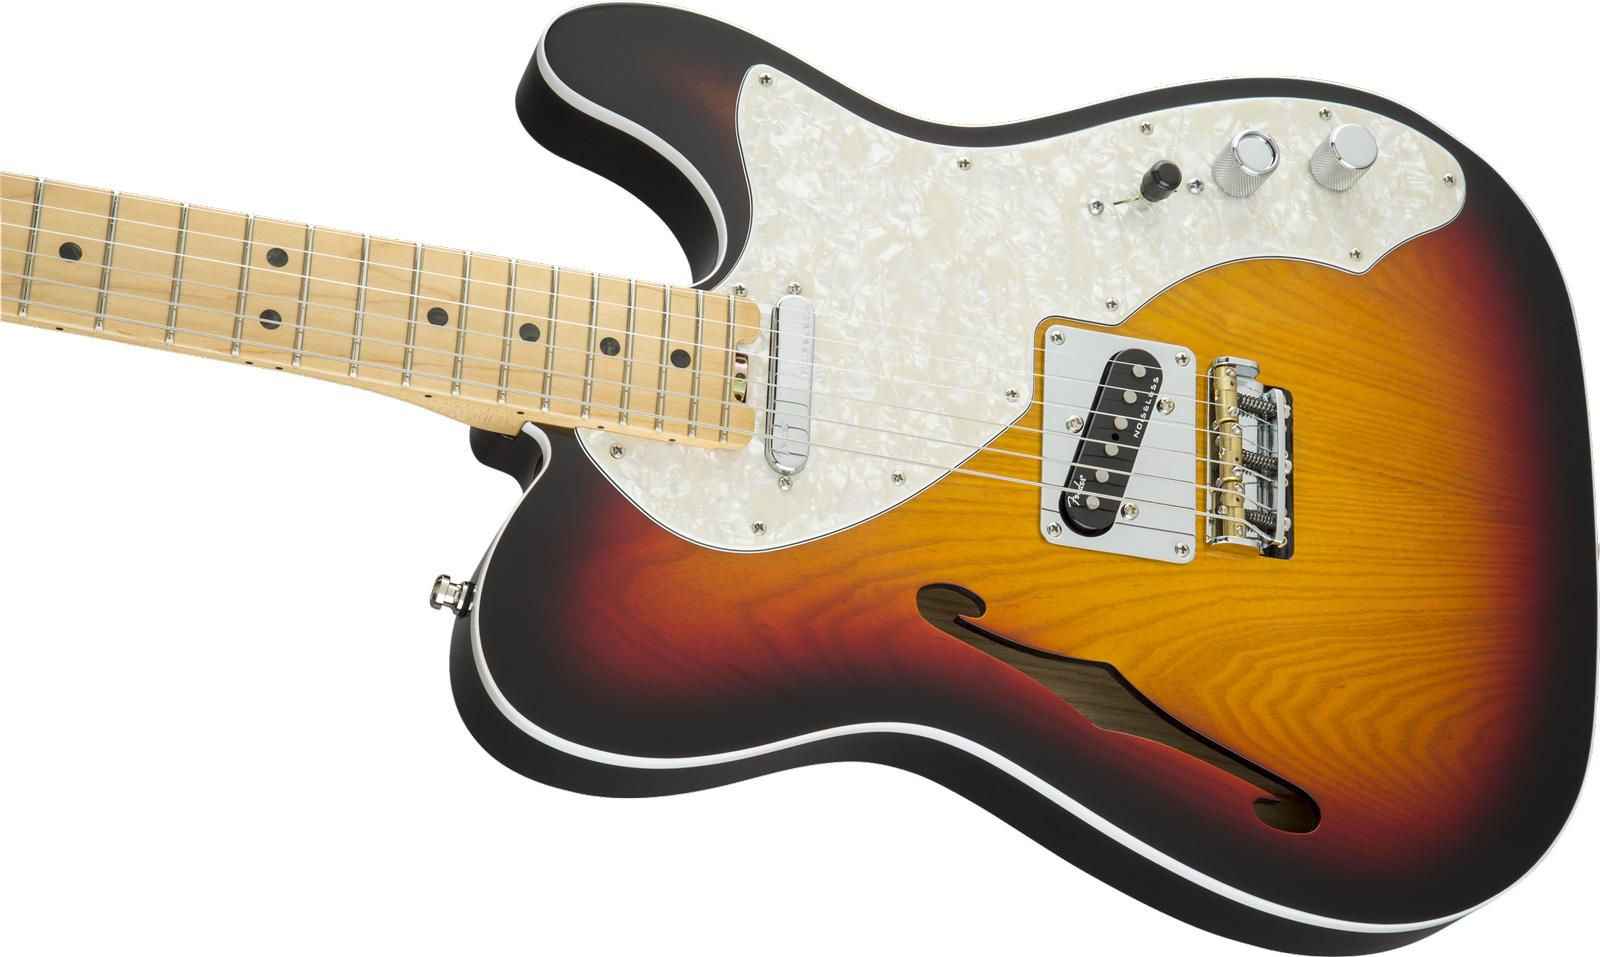 fender elite stratocaster wiring diagram simple electronic projects with circuit american telecaster thinline mn 3 color